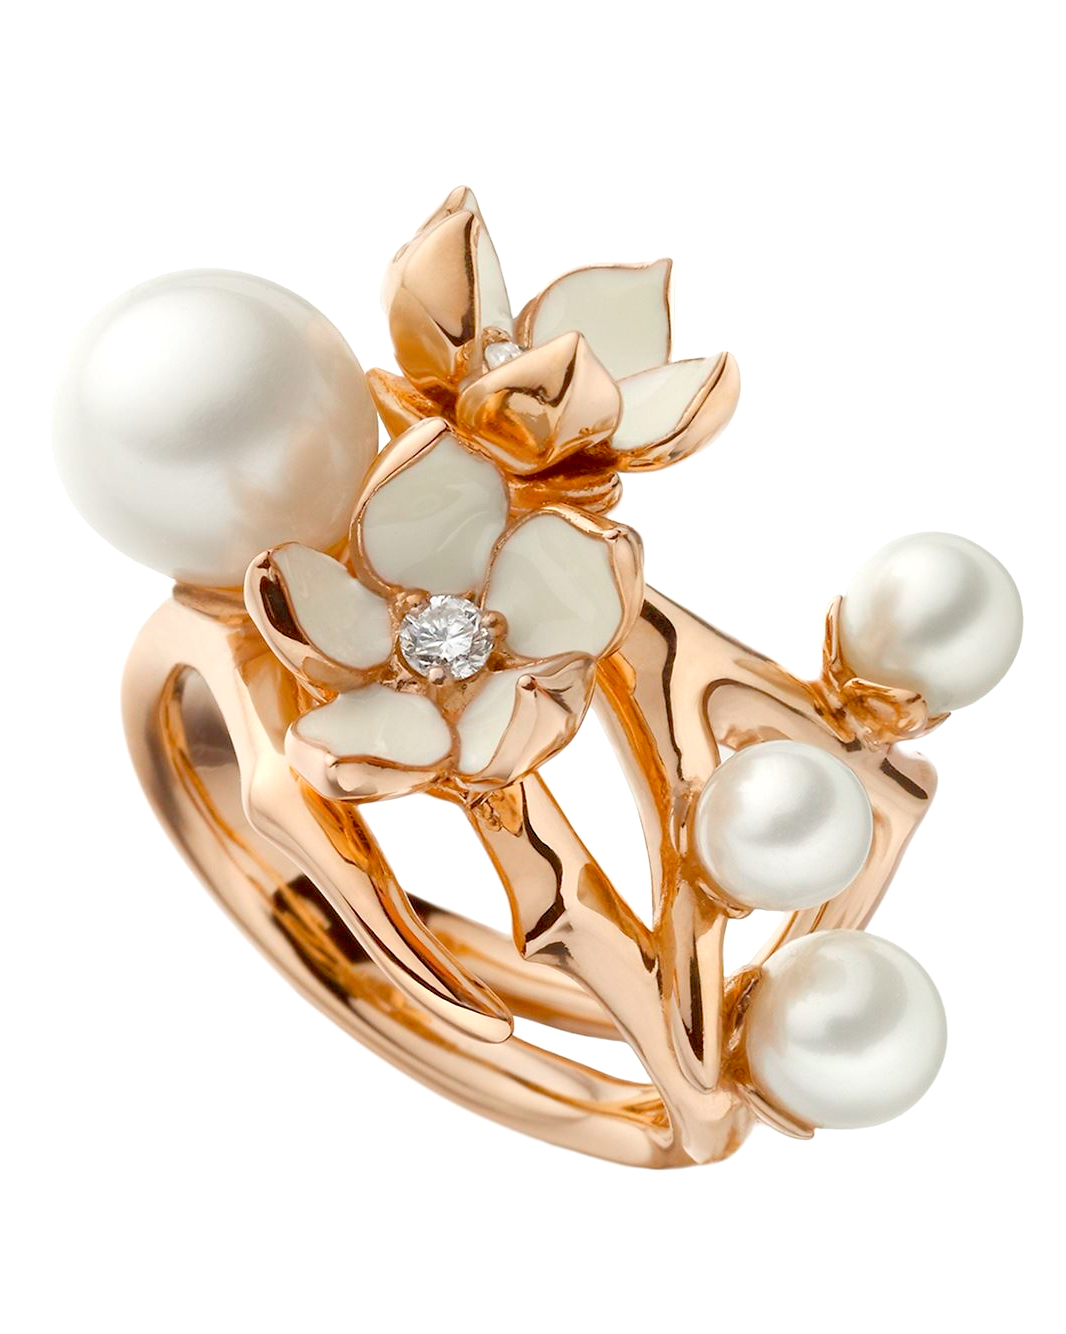 Pearls Gone Wild! 5 Accessories That Offer a Twist on the Bridal Classic